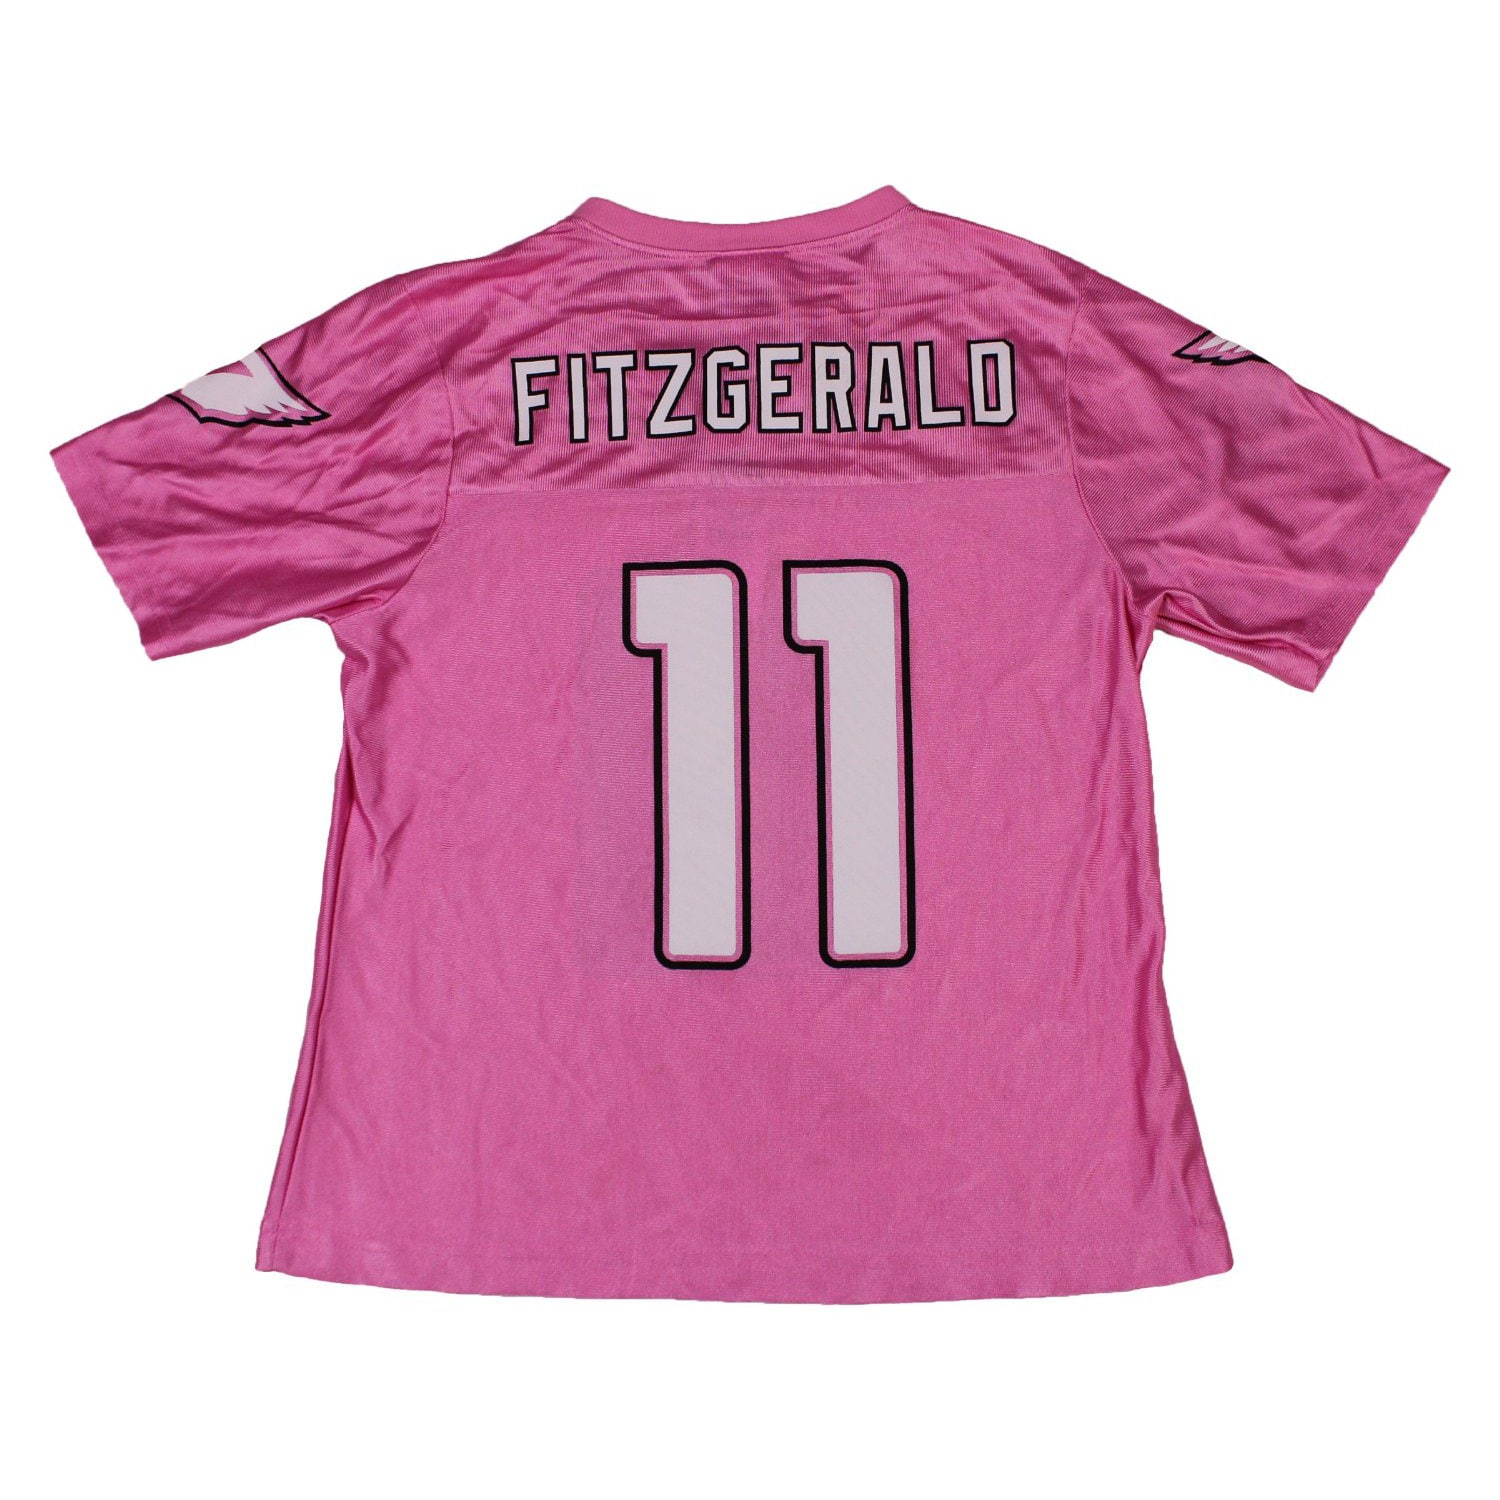 437d25b66 Shop Reebok Arizona Cardinals NFL Women s Larry Fitzgerald Pink Dazzle  Jersey - Free Shipping On Orders Over  45 - Overstock - 7634378